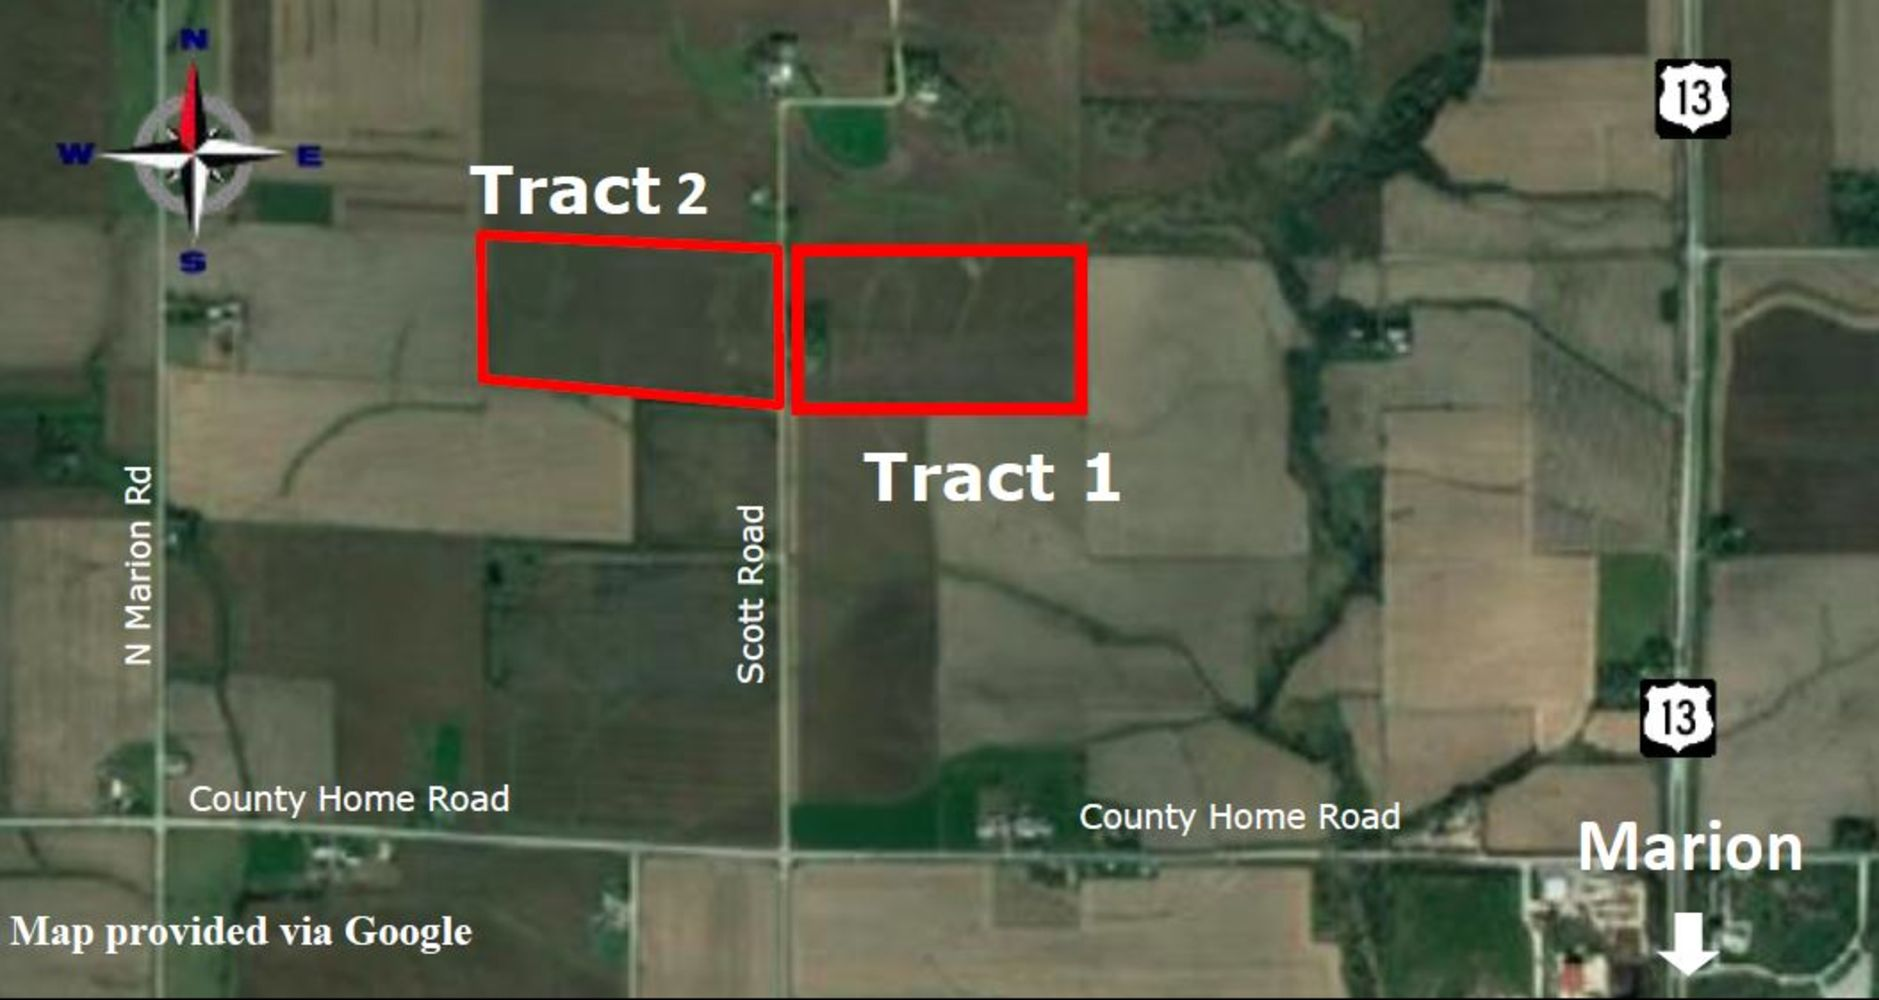 Farmland Auction In partnership with Agri-Management Services